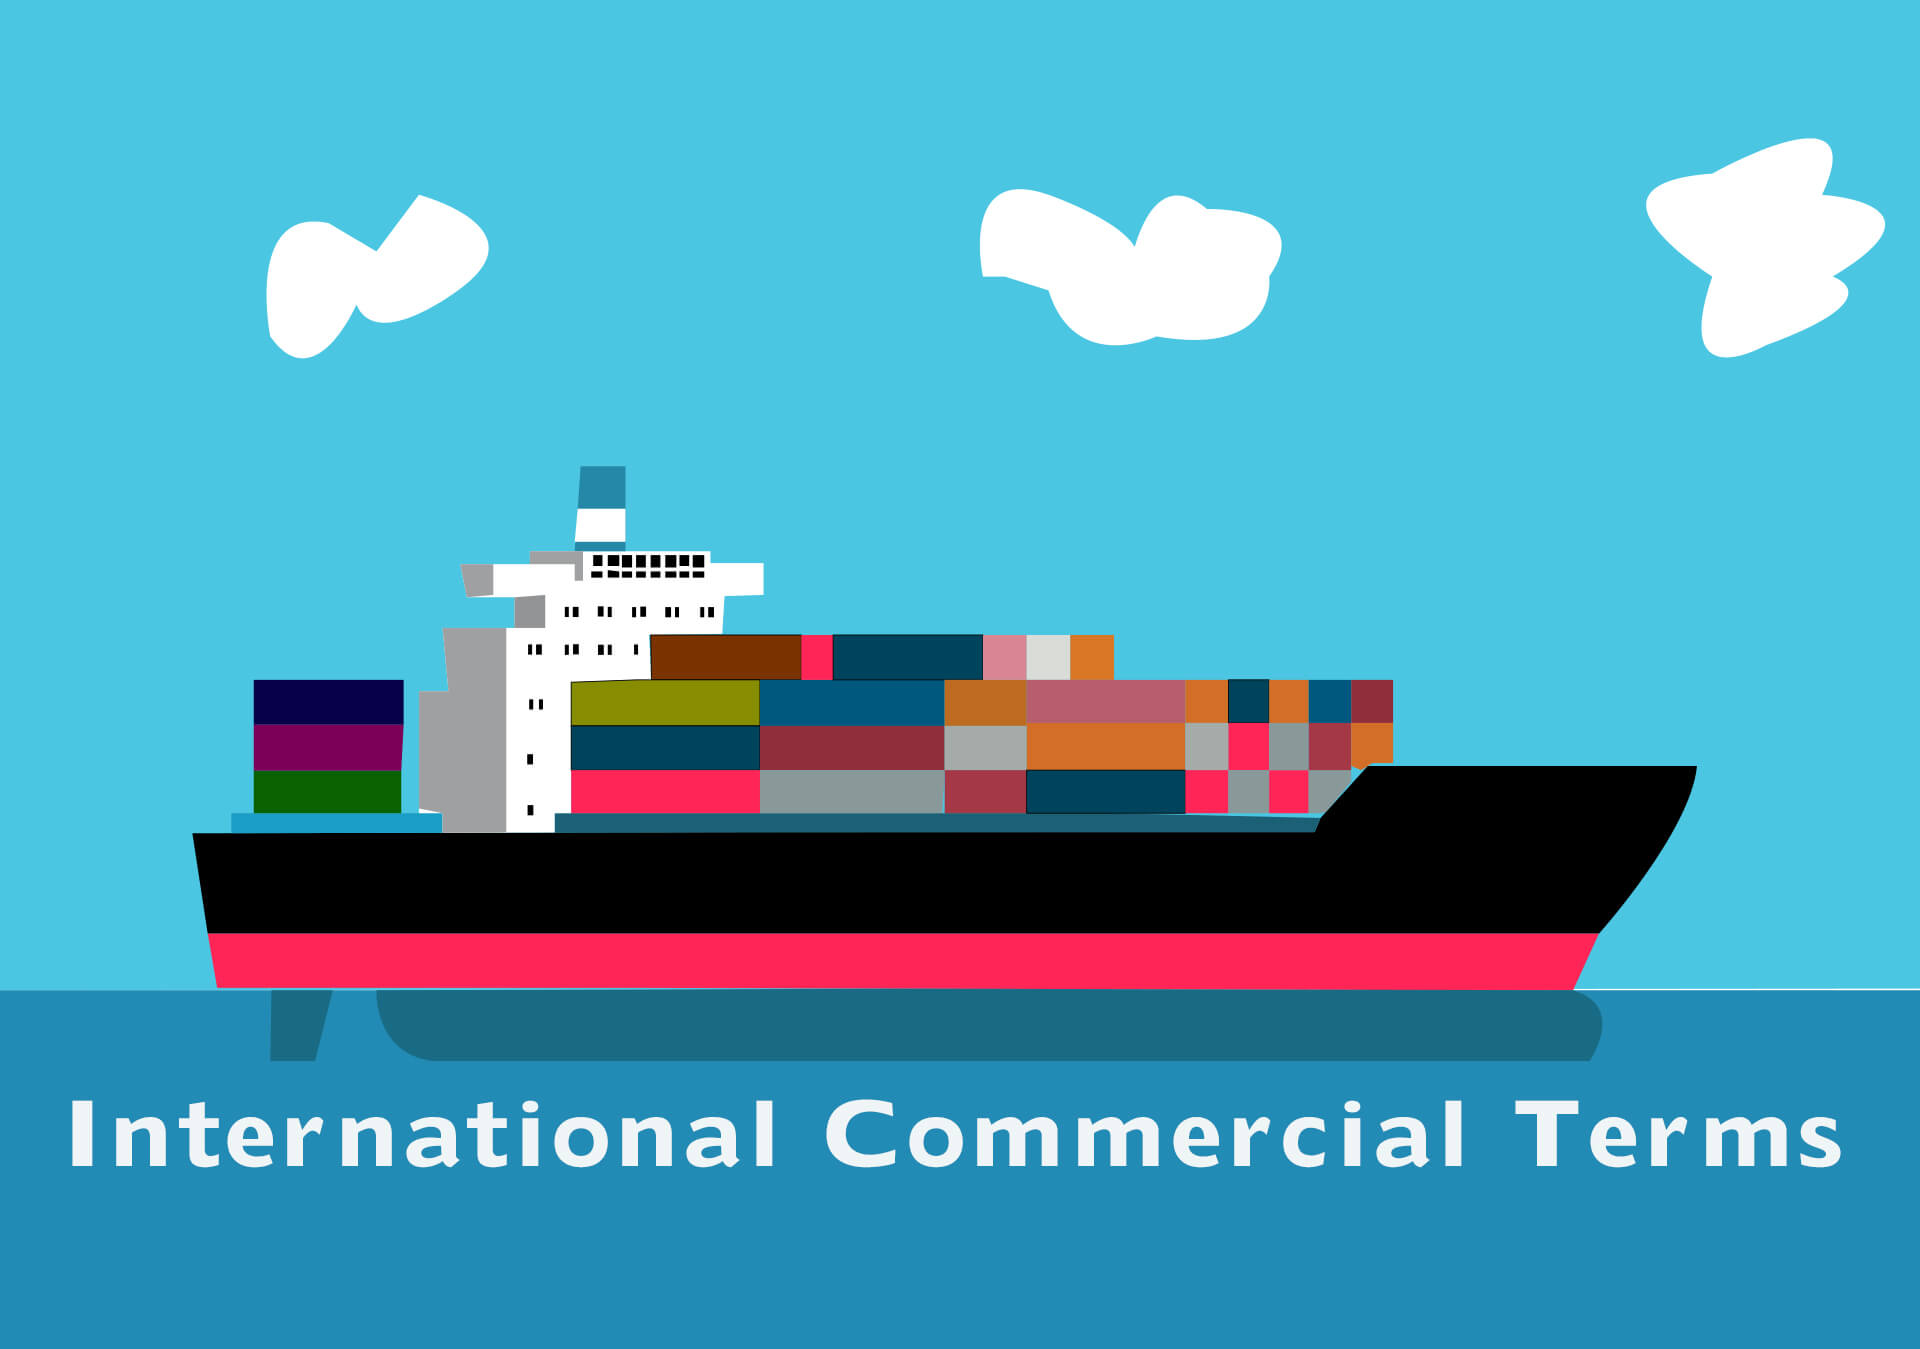 International Commercial Terms (1)